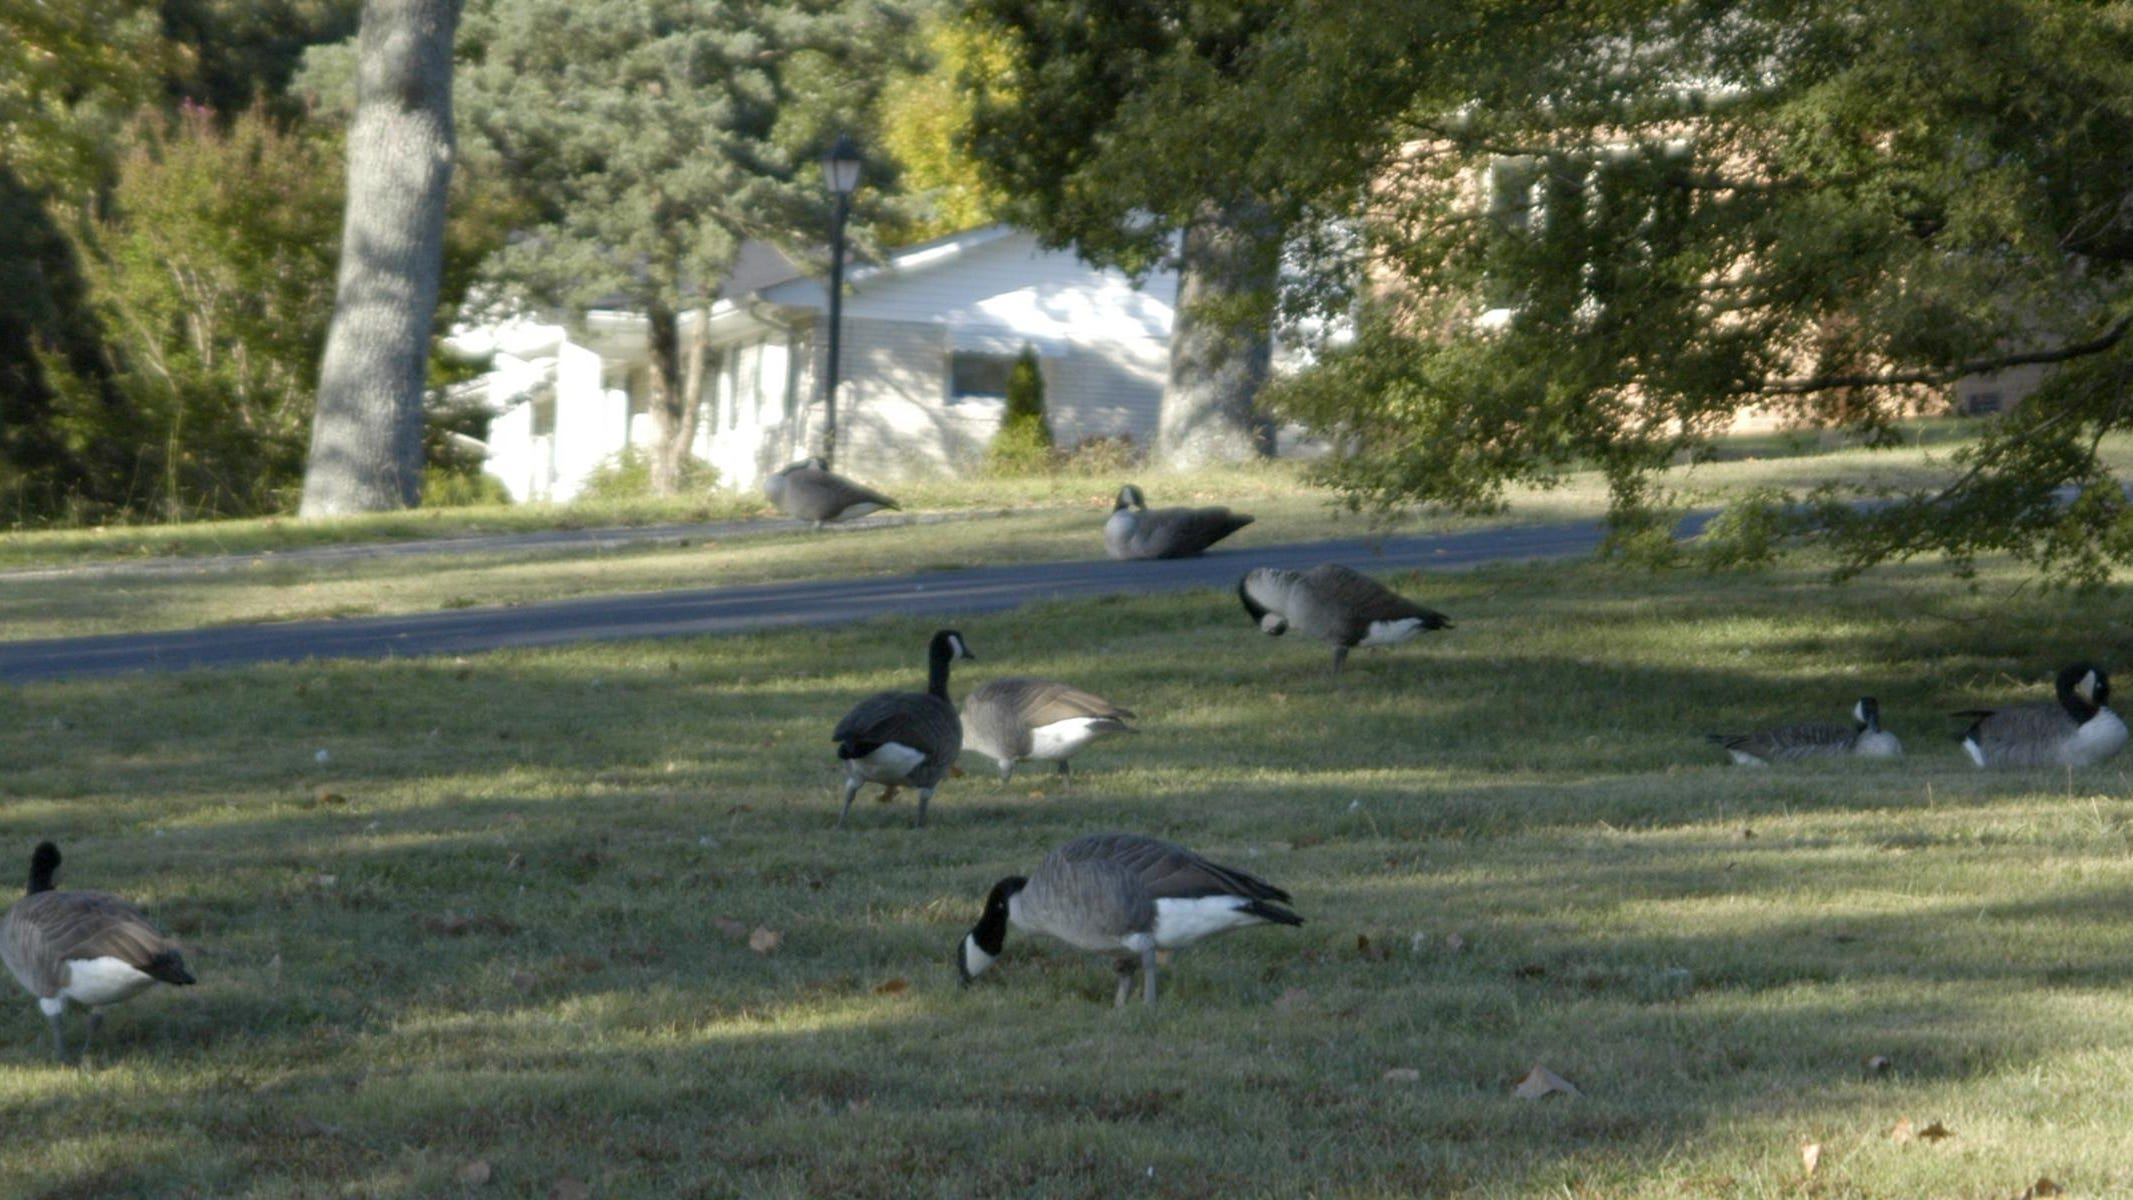 Petitioners want geese reduced at Dickson's Luther Lake